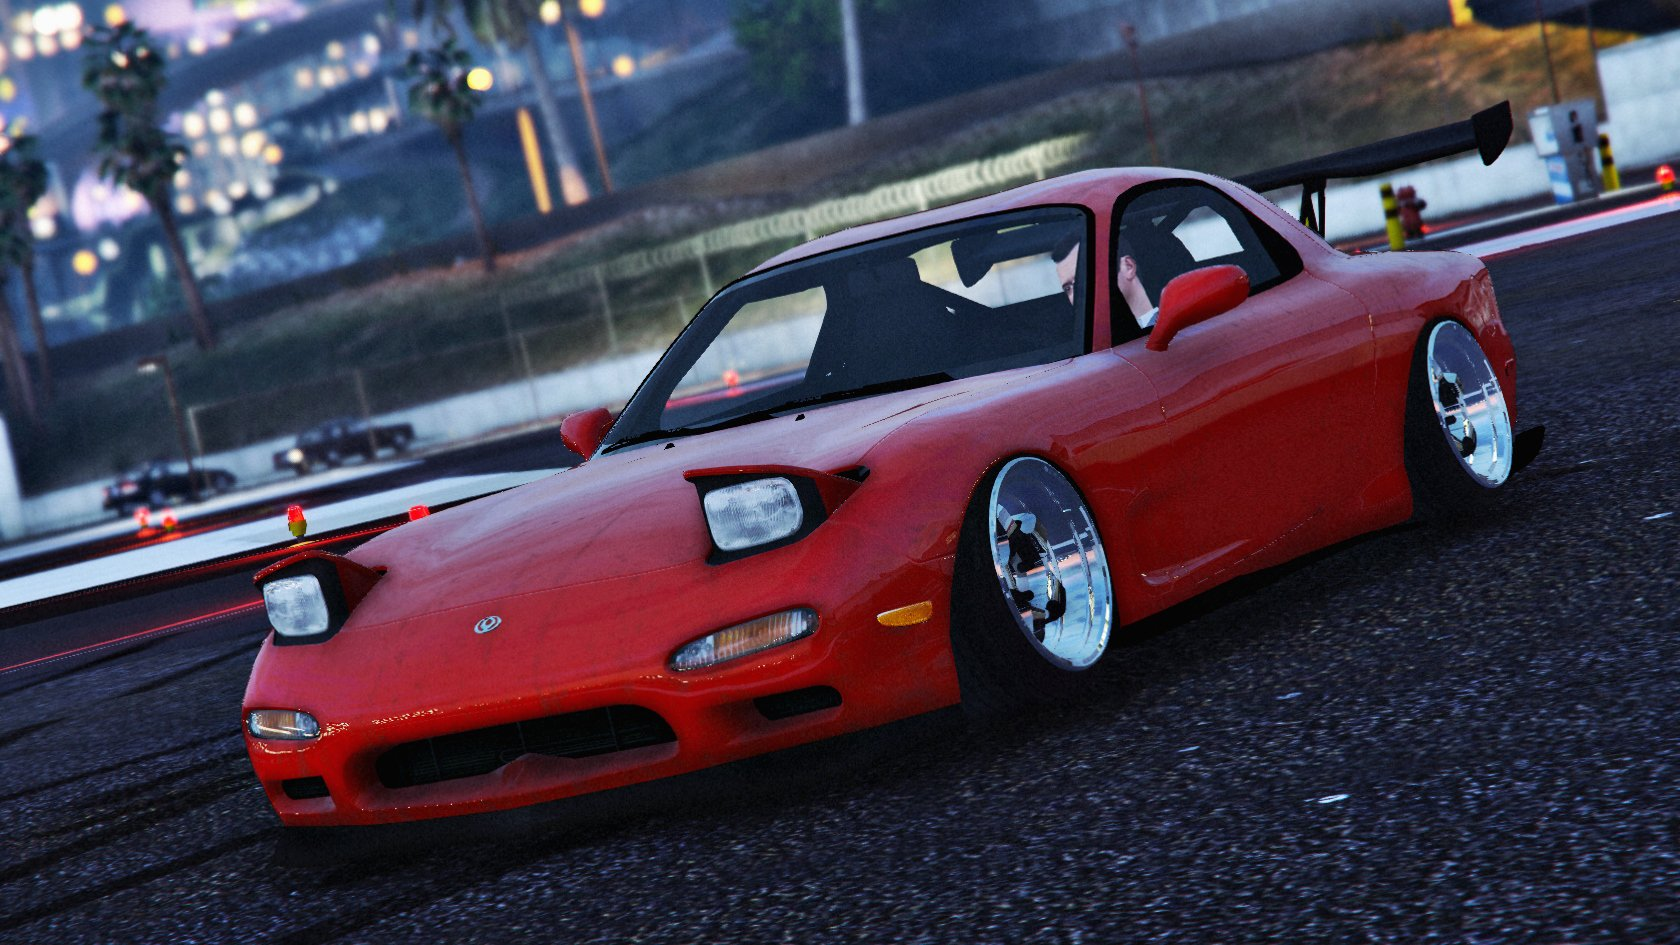 Mazda Rx7 Fd3s Stanced Cambered Vehicules Pour Gta V Sur Gta Modding